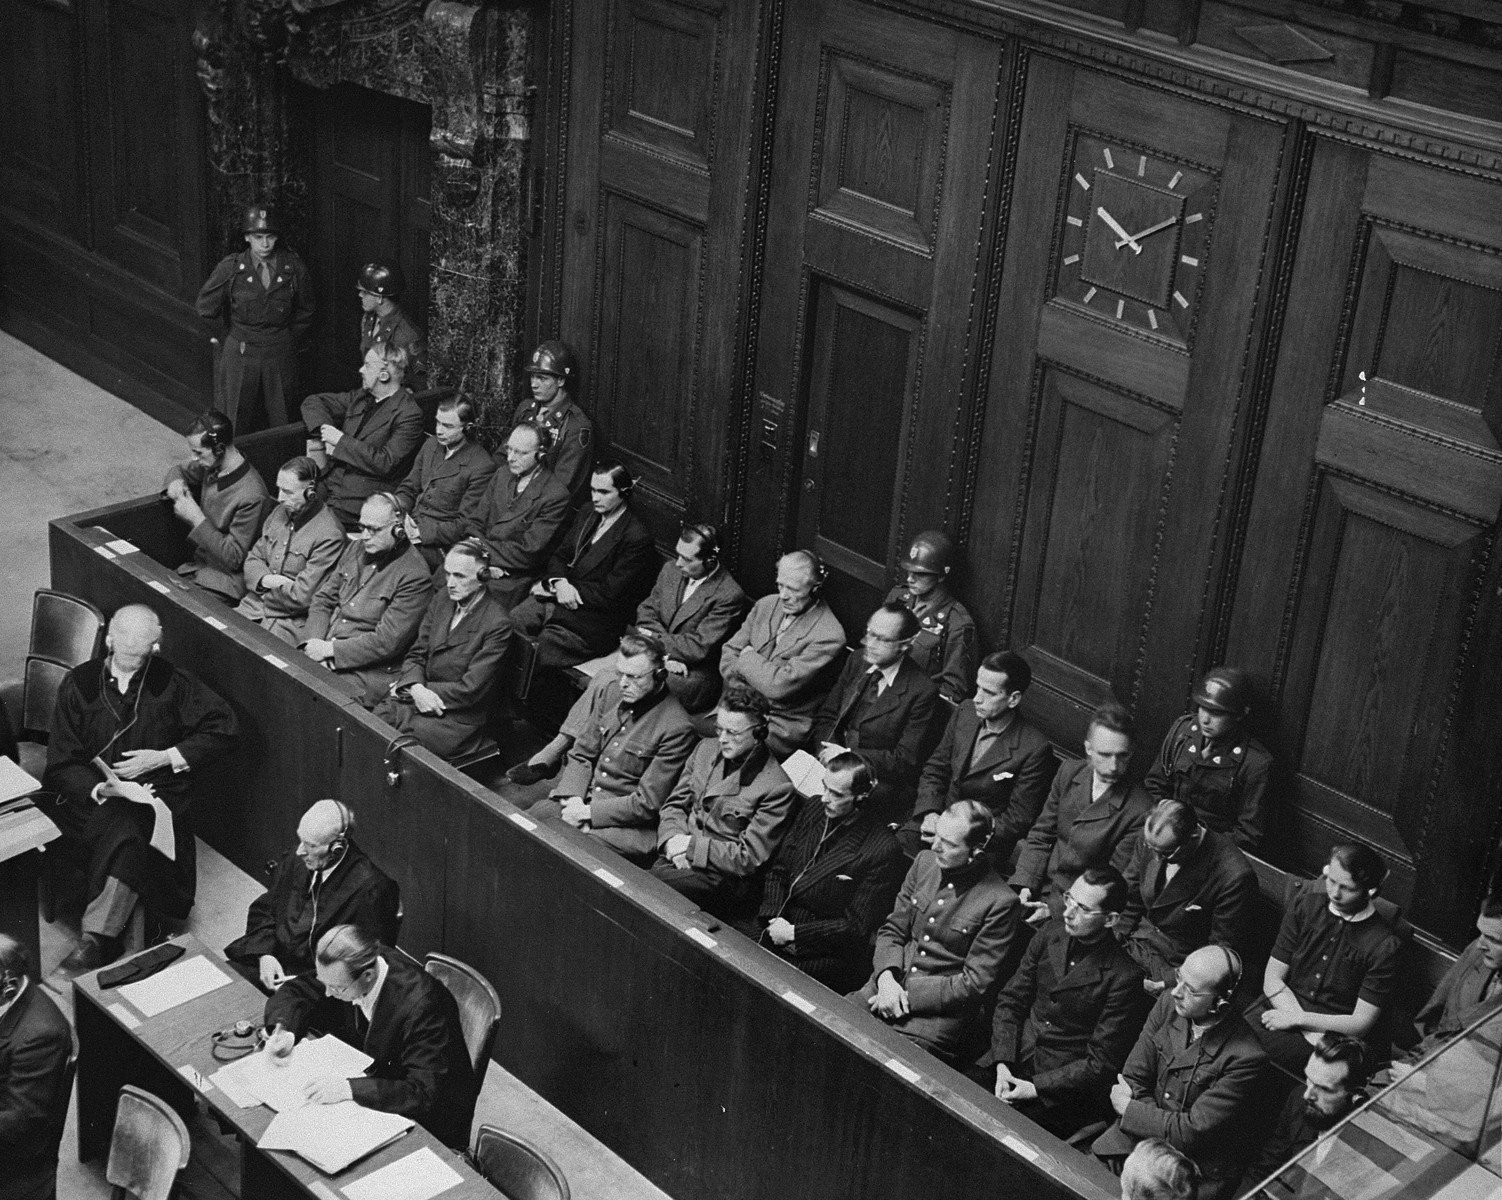 View from above of the defendants dock during a session of the Medical Case (Doctors') Trial in Nuremberg.